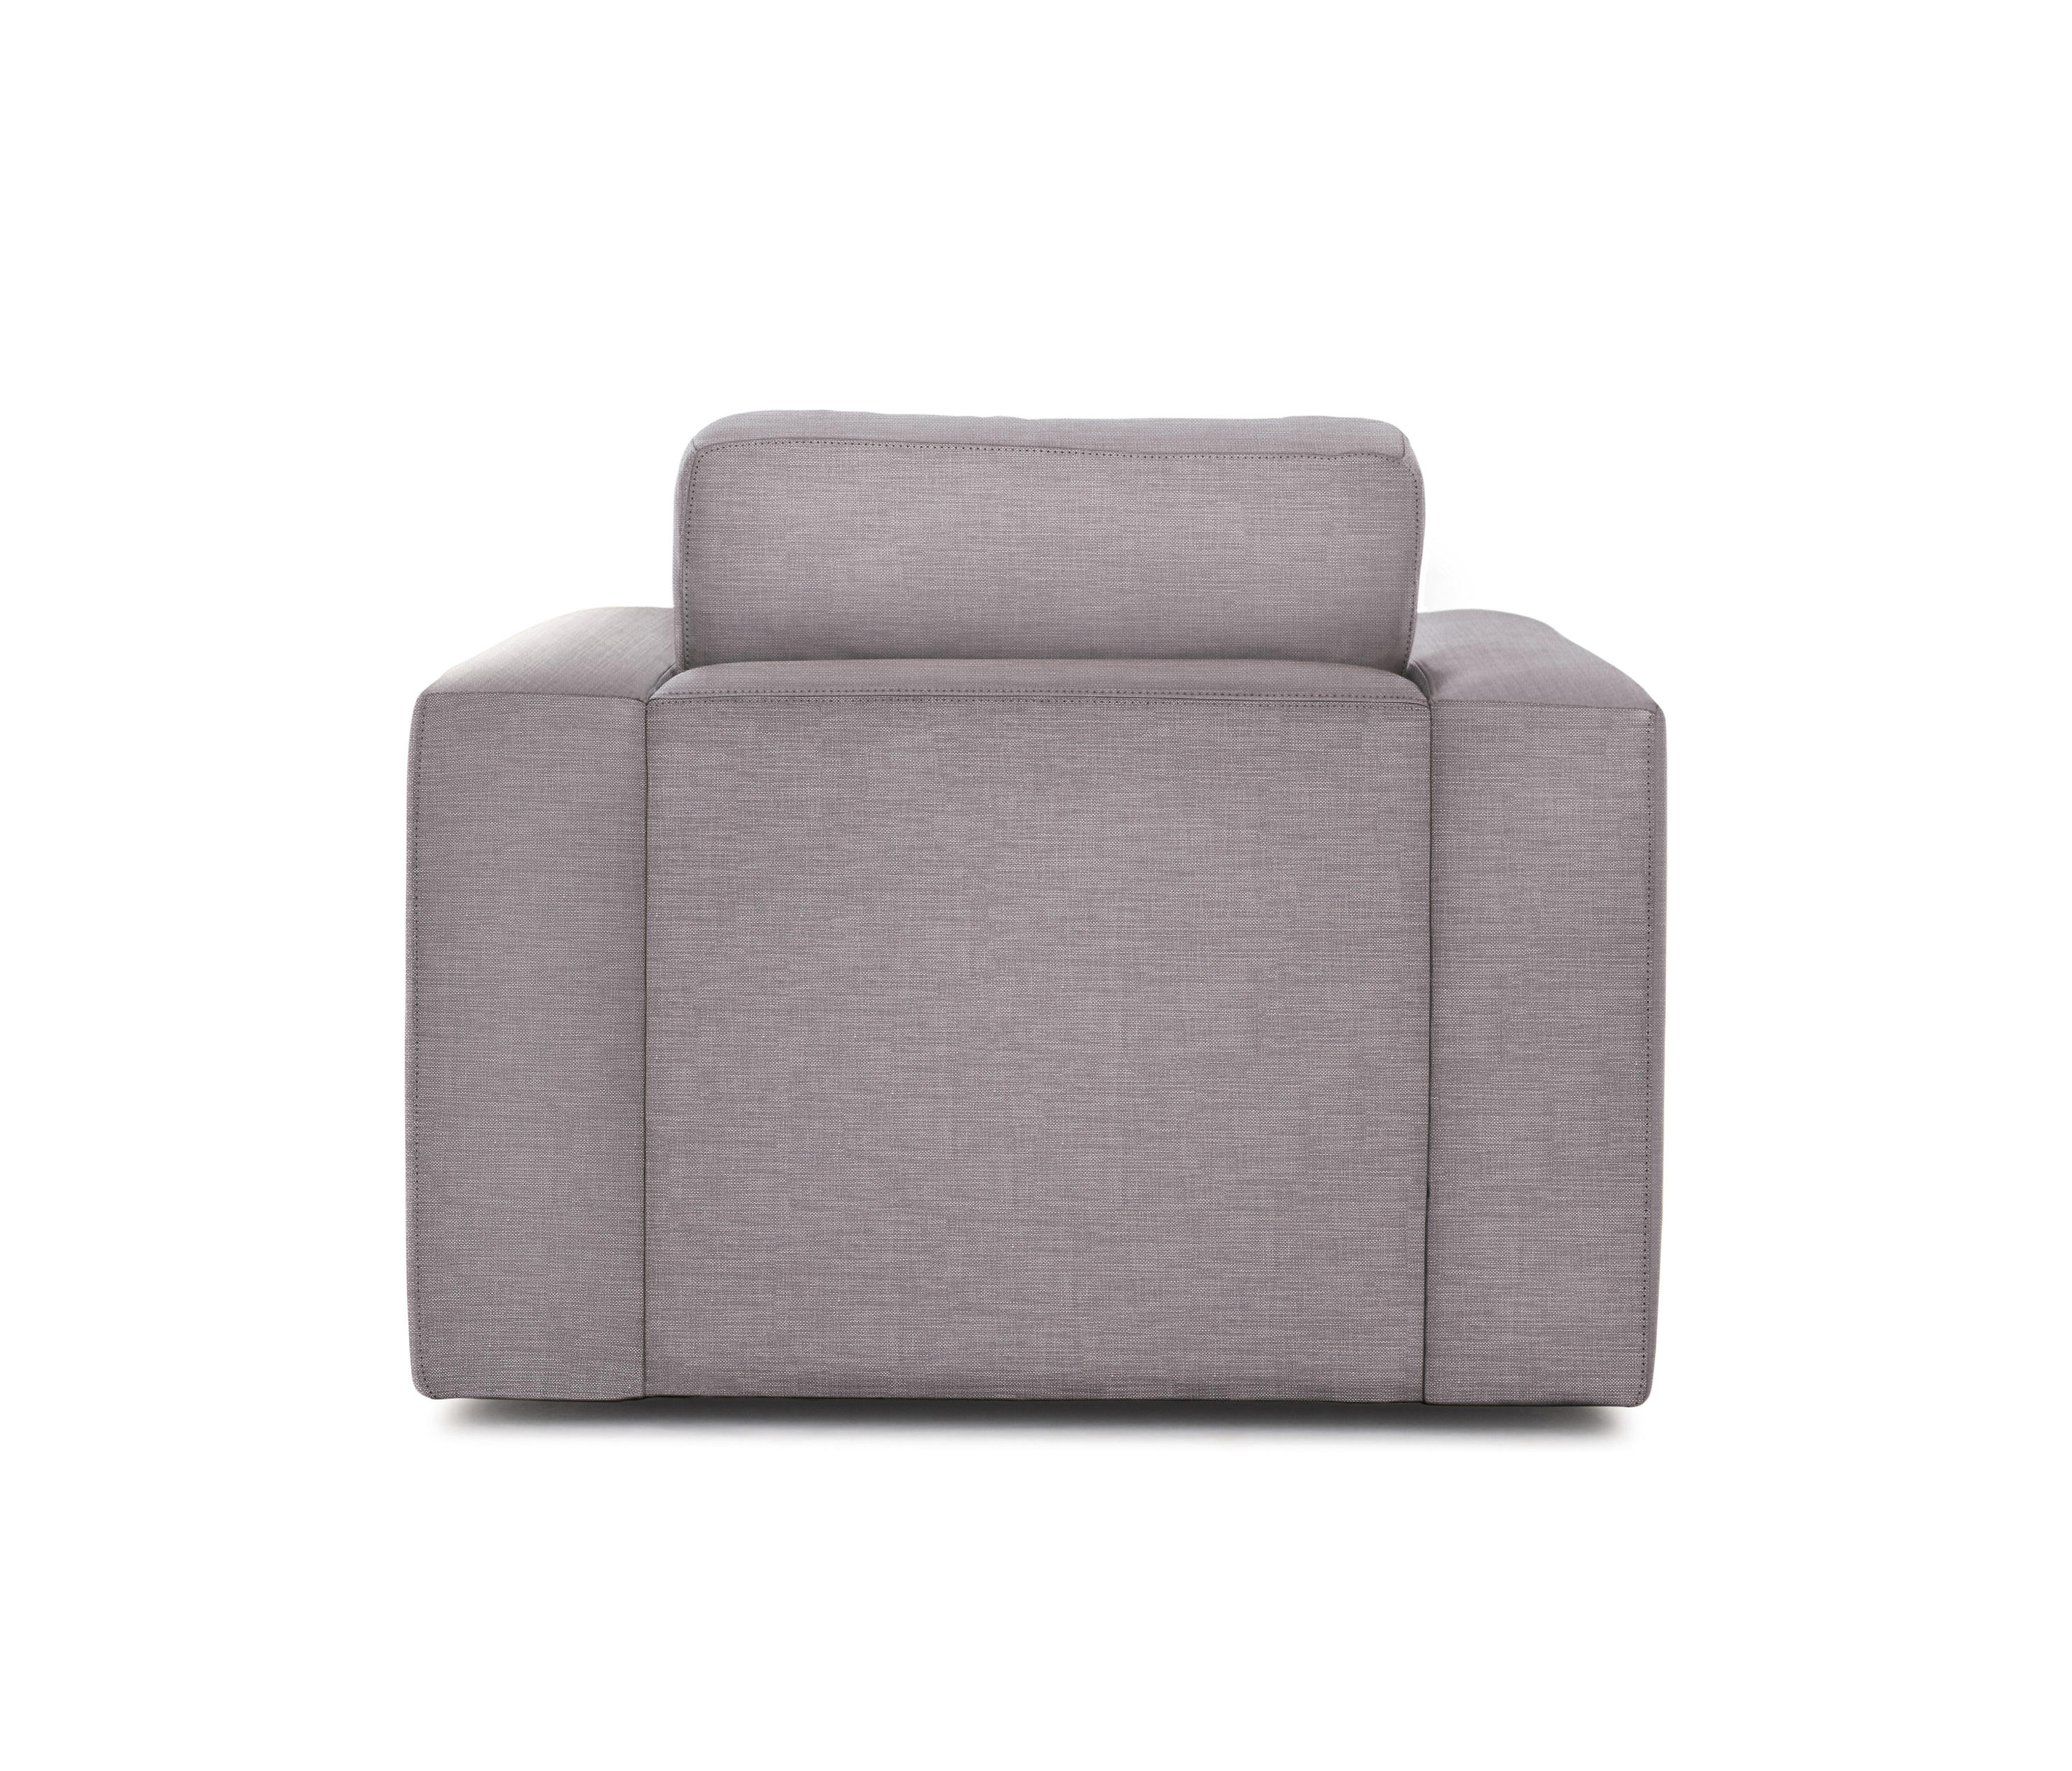 Reid Armchair In Fabric Armchairs From Design Within